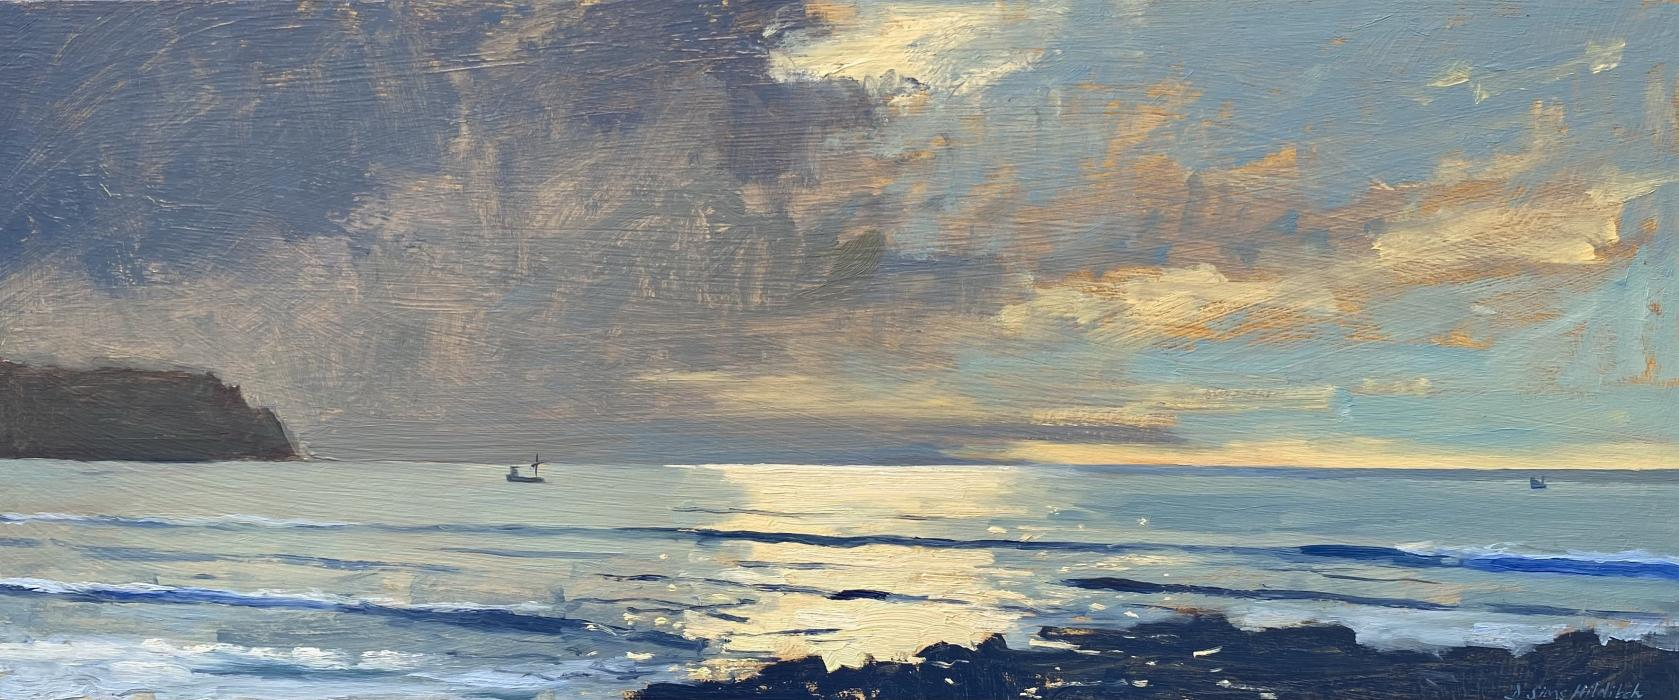 Early morning light Impression with fishing boats, Pendower beach